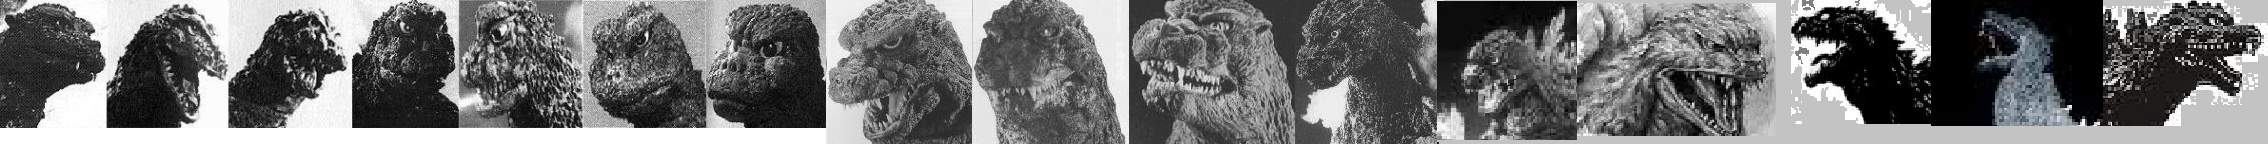 godzilla over the years